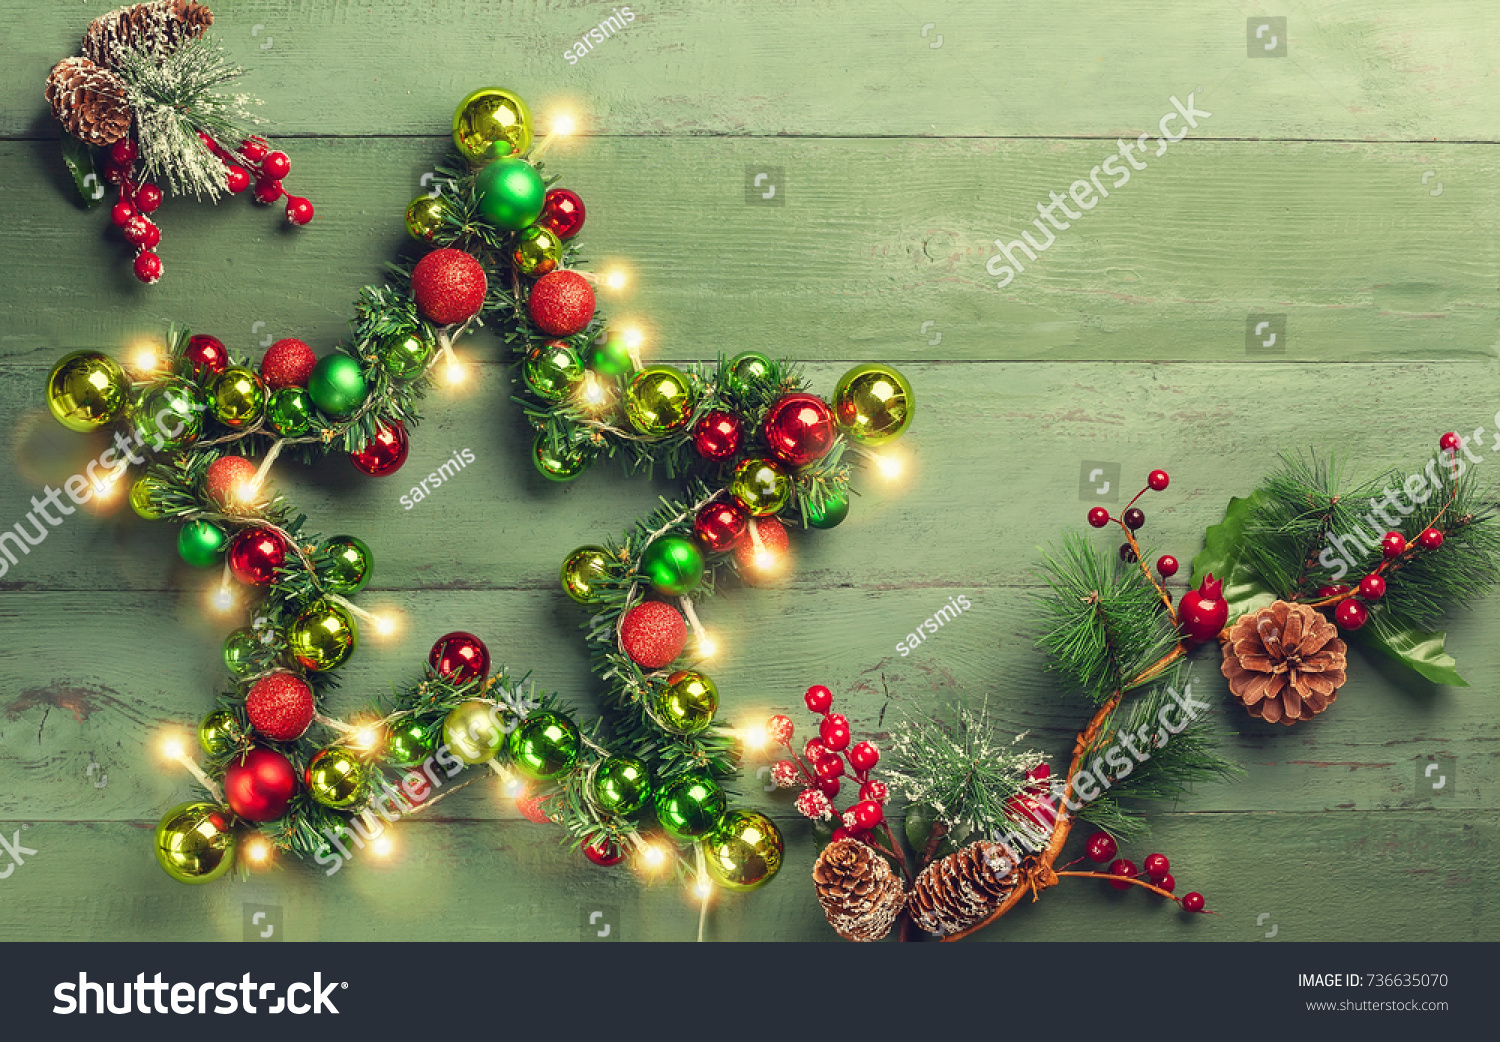 Decorative Christmas Star Colored Baubles Christmas Stock Photo ...